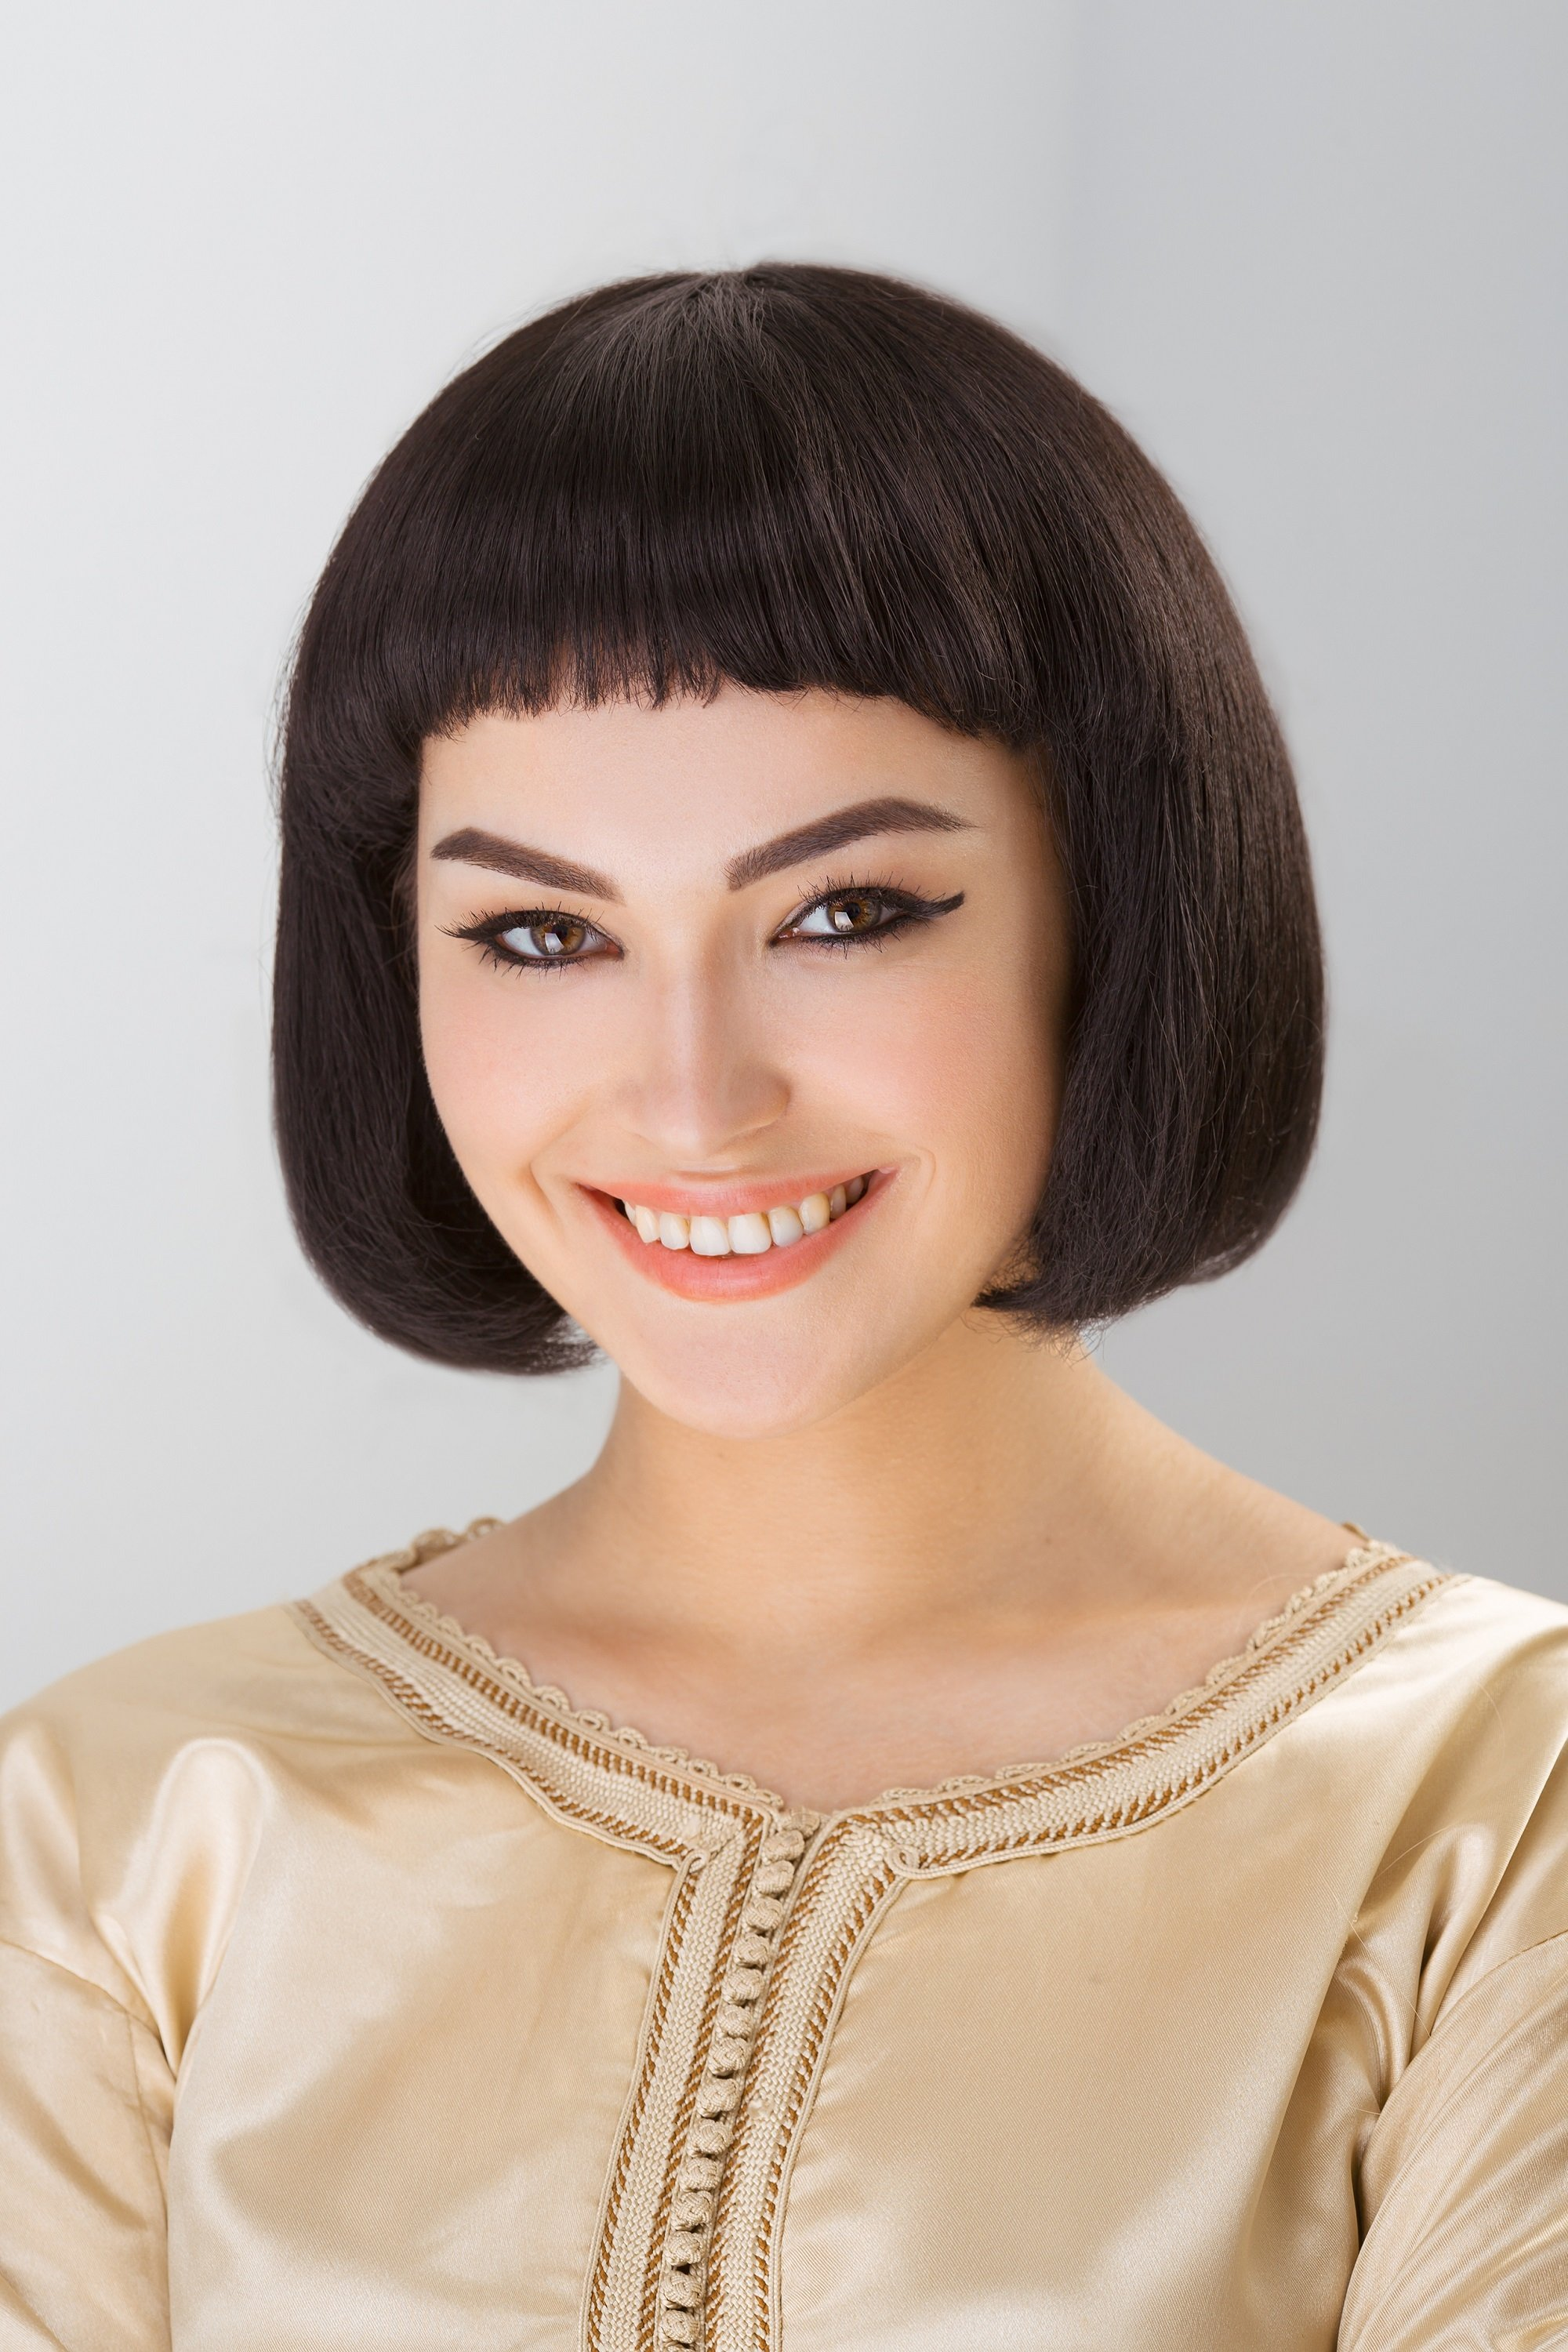 Straight bangs: Woman with baby bangs and chin-length bob